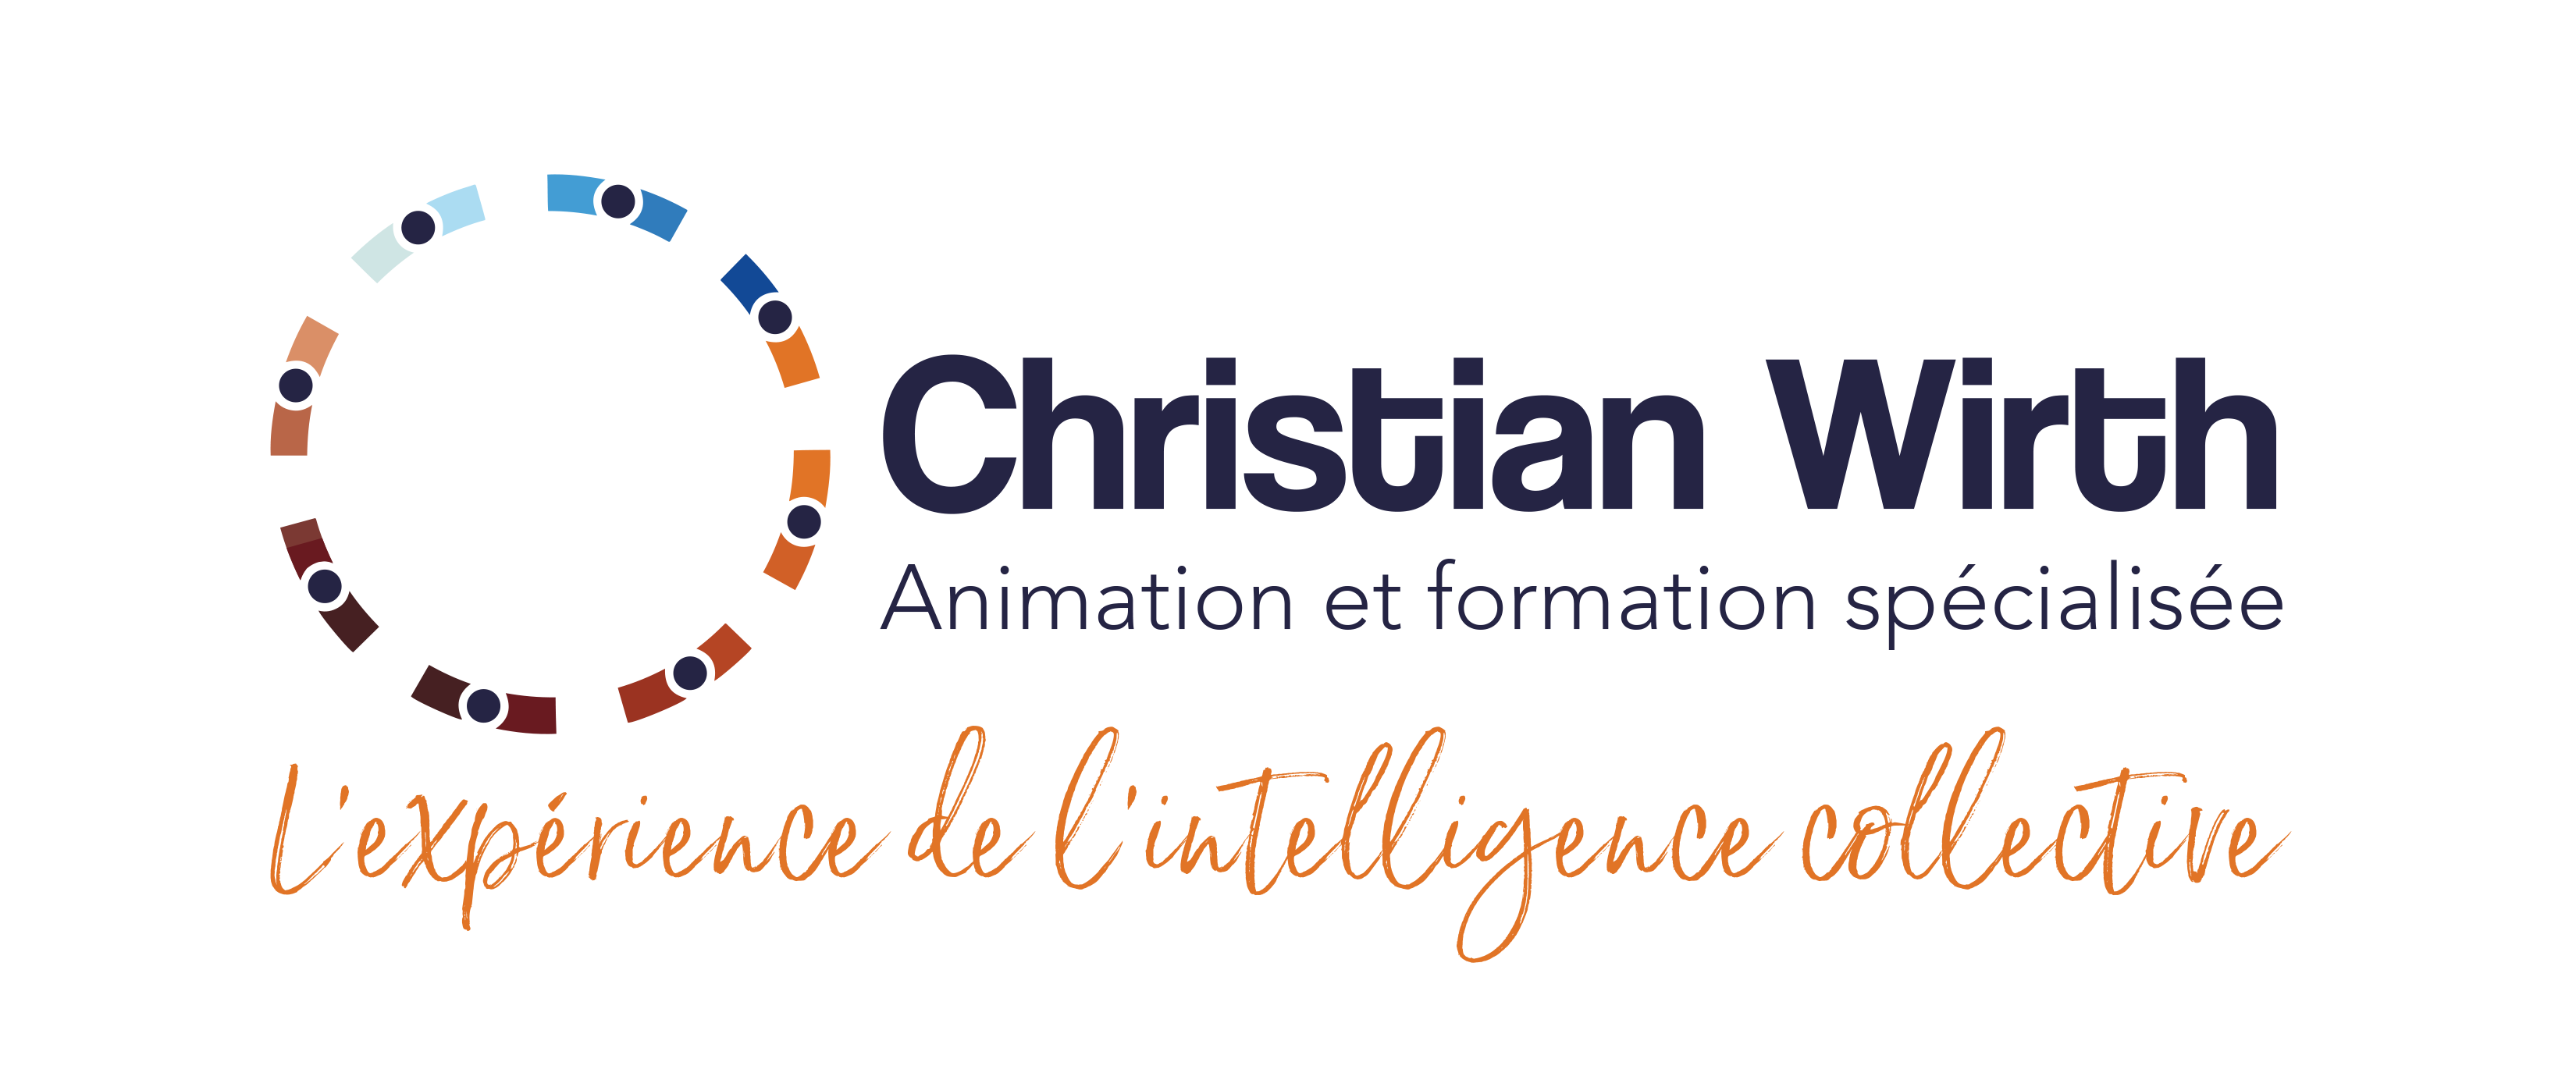 Formation en intelligence collective